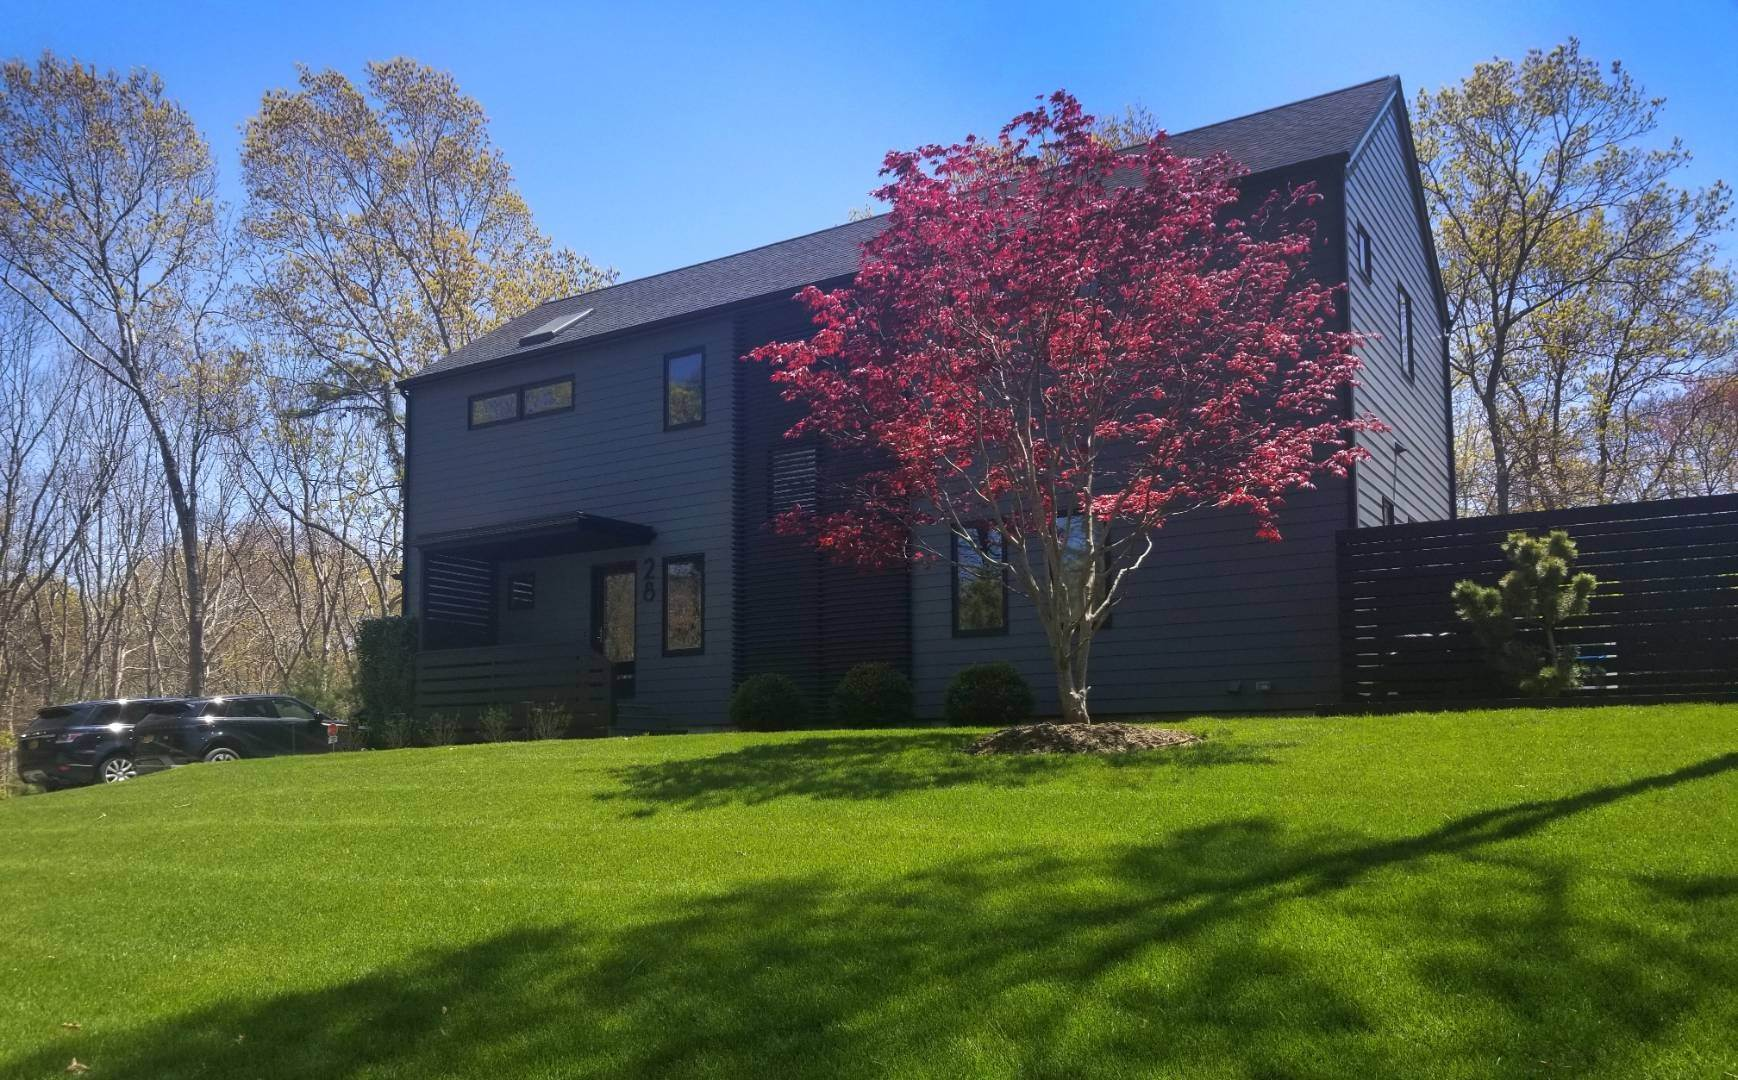 Single Family Home for Sale at Sleek, Modern, 5 Bedroom In East Hampton 28 Barnes Avenue, East Hampton, NY 11937